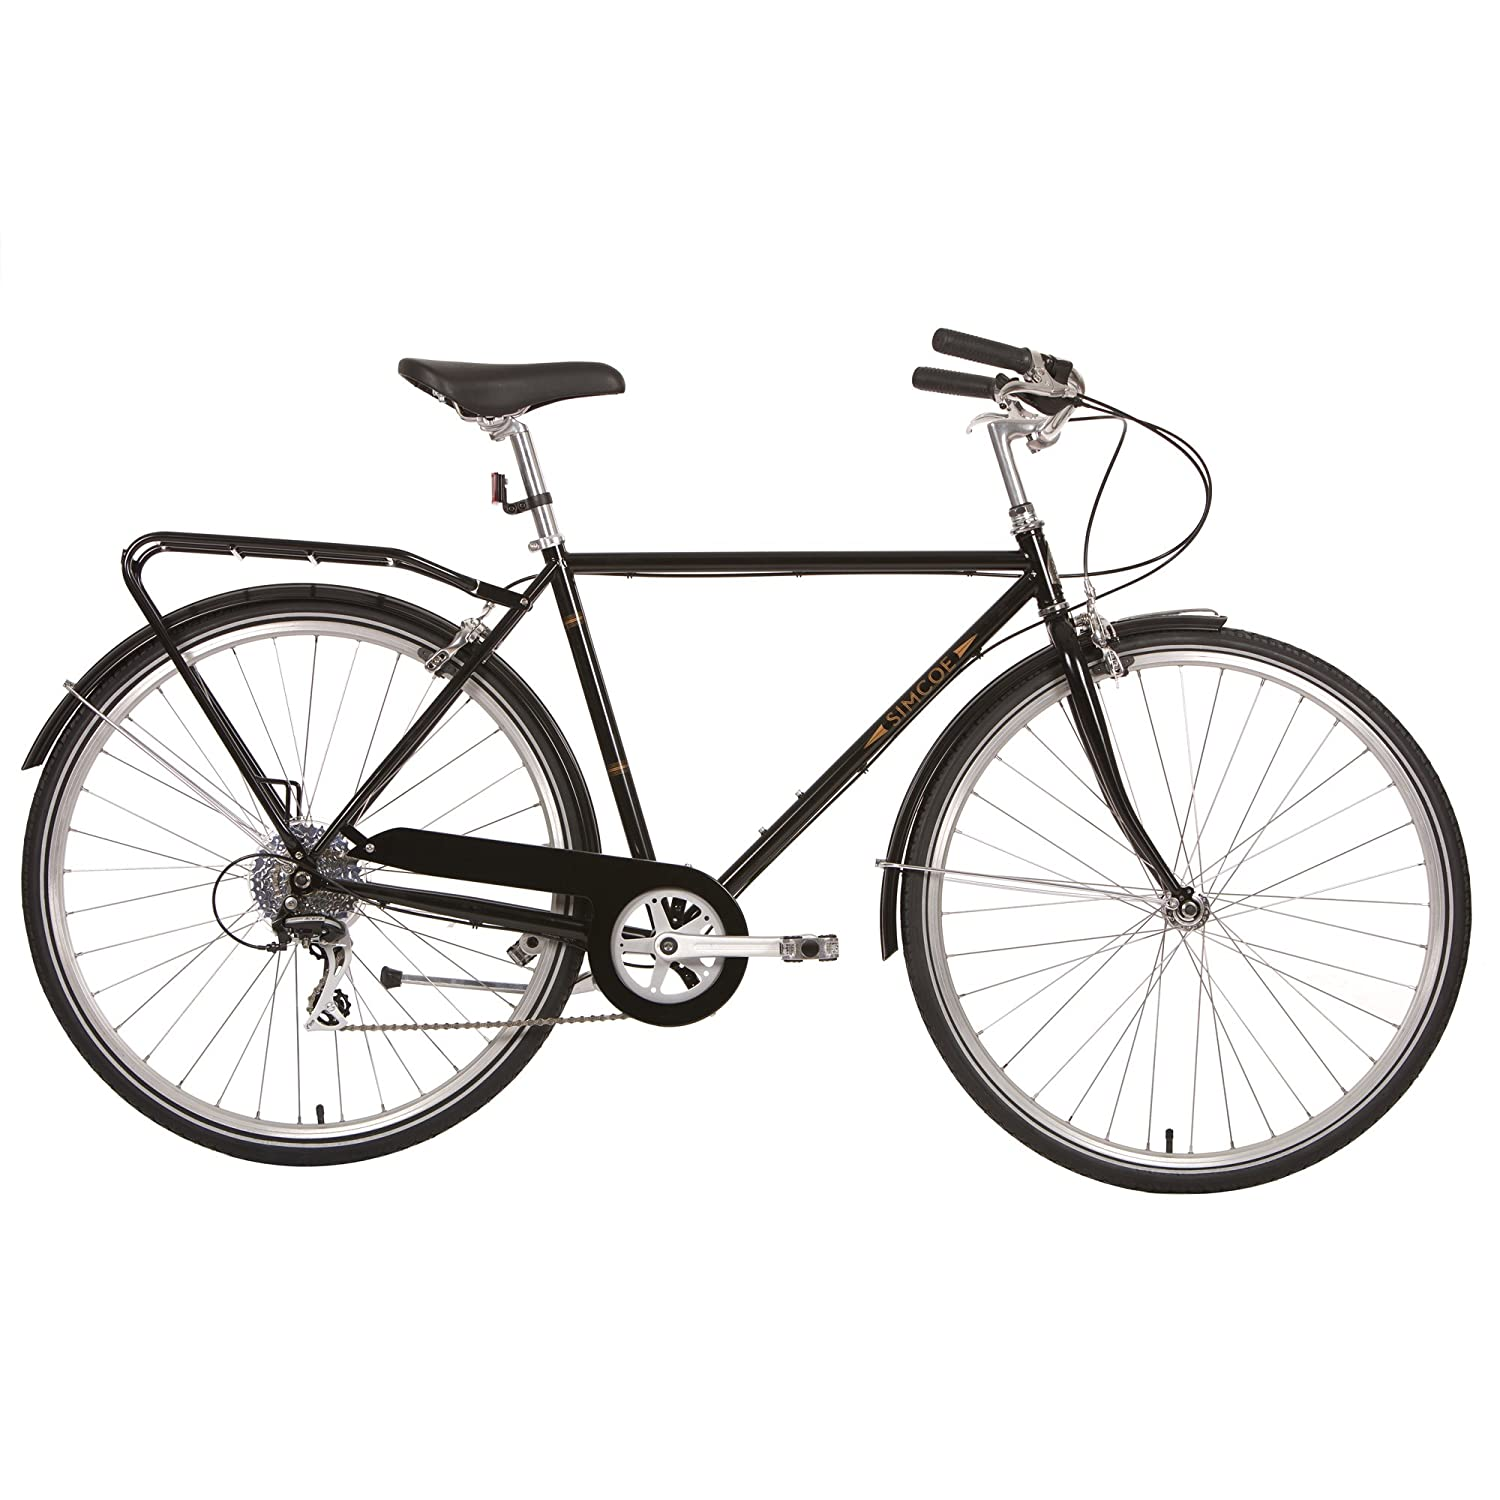 Simcoeロードスタークラシック8 Commuter / City Bikes – マットブラック B01F3Z5ECU Medium|Matte Black Matte Black Medium